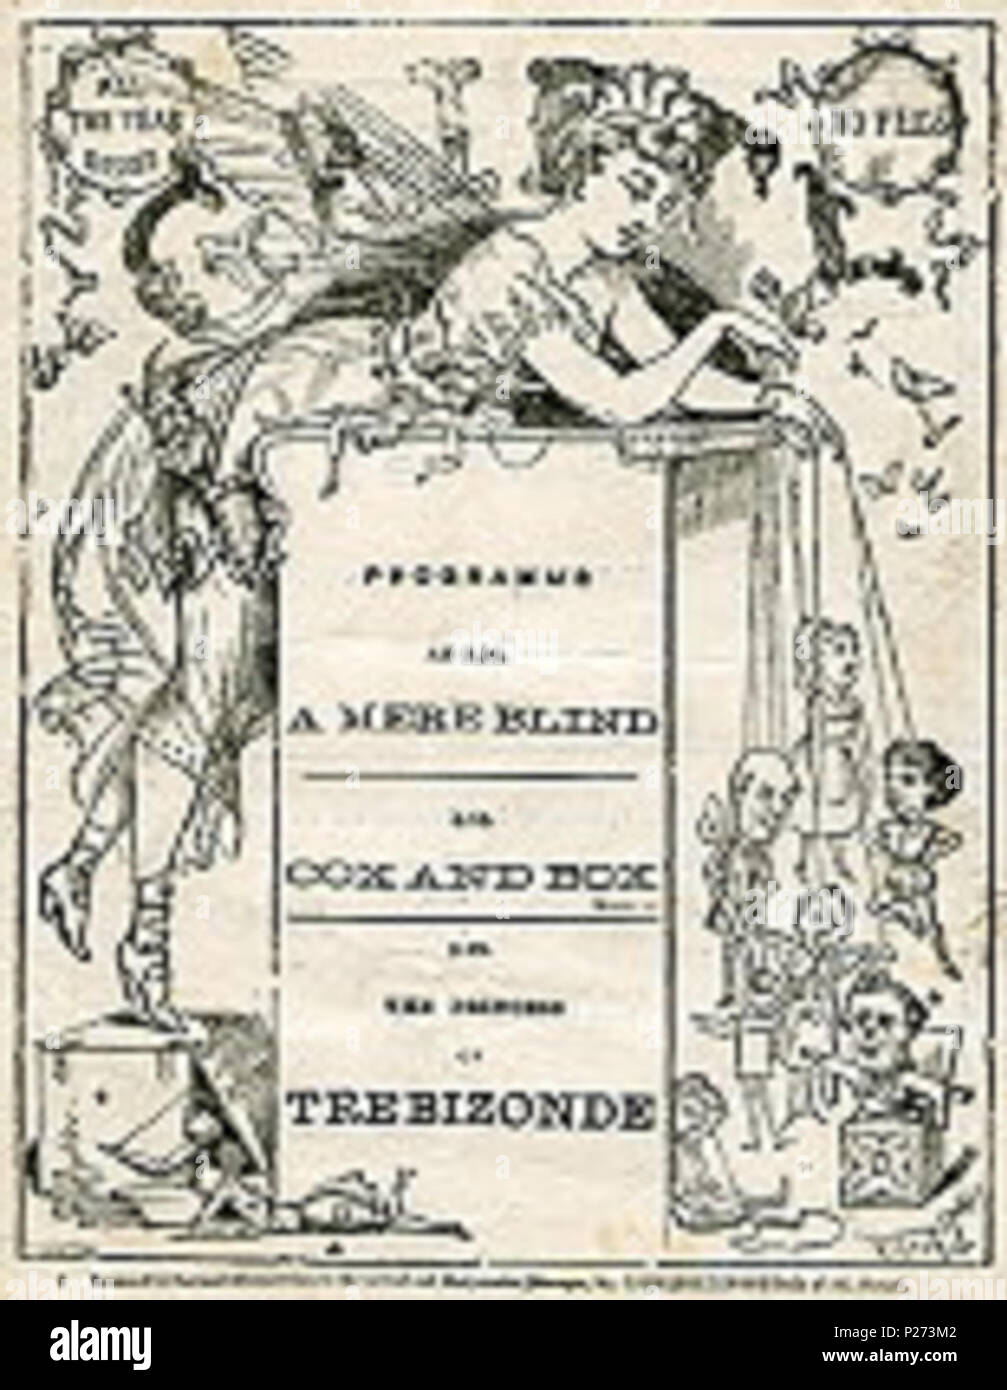 . English: Theatre programme cover for an 1874 production of Cox and Box. This production appeared at the Gaiety Theatre during the week of 7 September 1874. The composer's brother, Fred Sullivan, played Cox, with Arthur Cecil as Box and J. G. Taylor as Bouncer. The evening commenced with Jacques Offenbach's A Mere Blind and ended with the 2nd and 3rd acts of the same composer's The Princess of Trebizonde. 7 September 1874. Unknown assumed to have died within 70 years of creating the work 70 CoxBox1874 - Stock Image